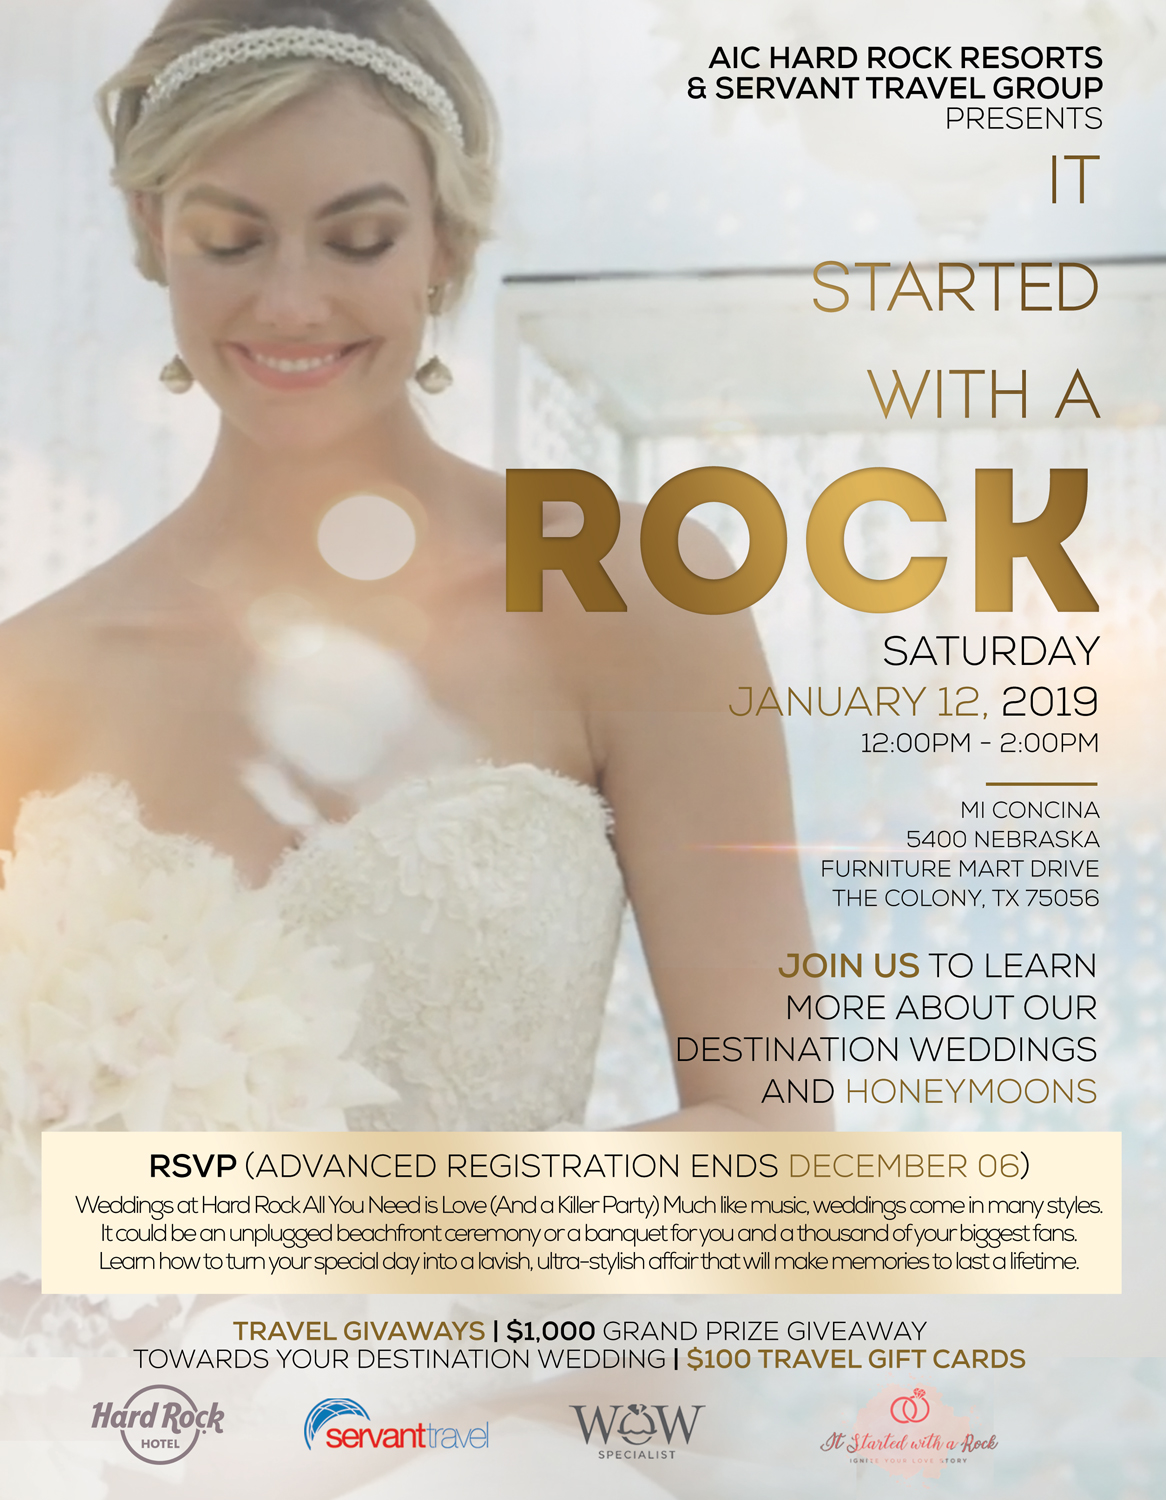 Destination Wedding & Honeymoon Bridal Show